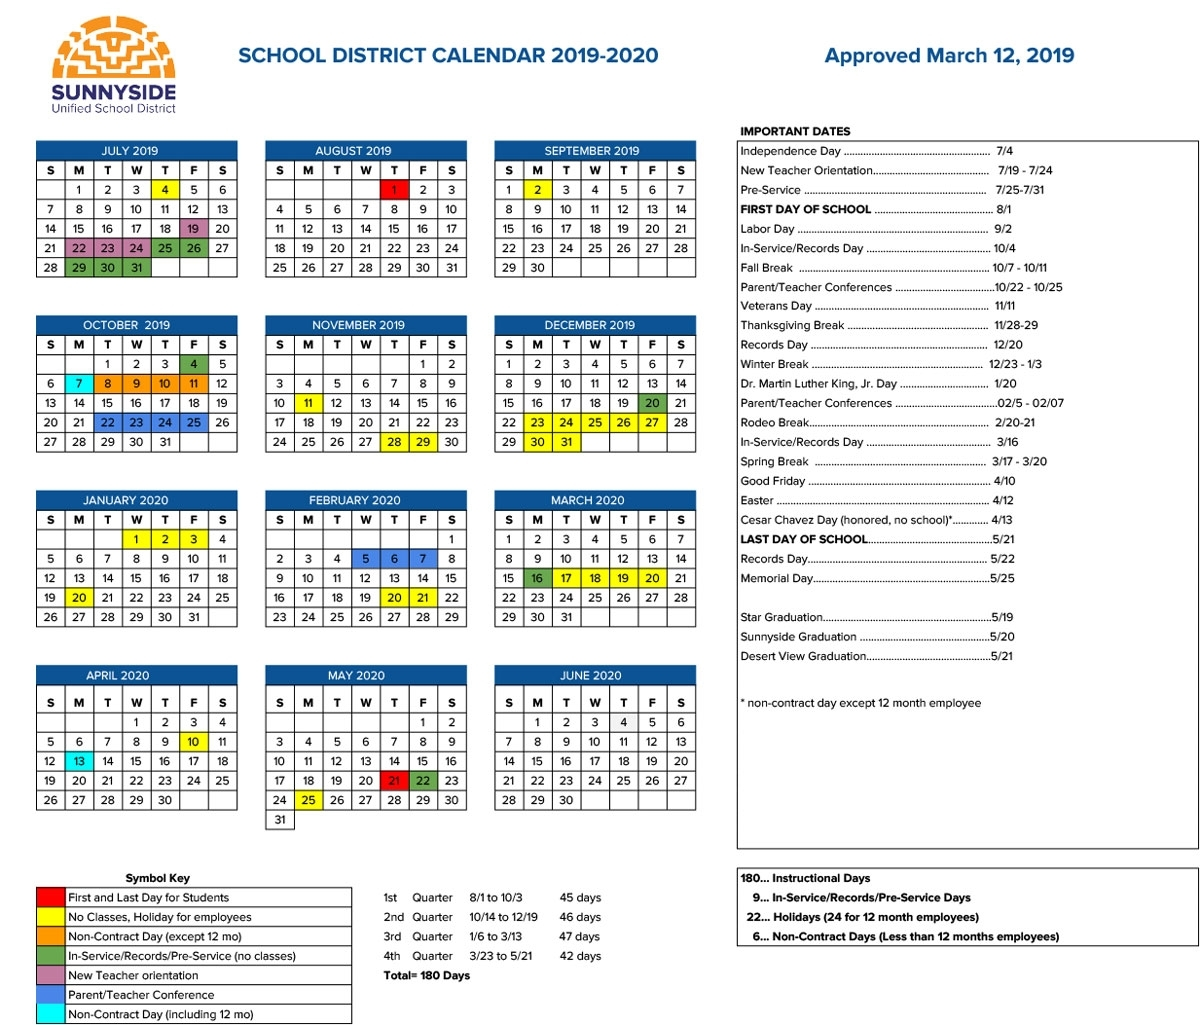 Academic Calendar | Sunnyside Unified School District for Special Days 2019-2020